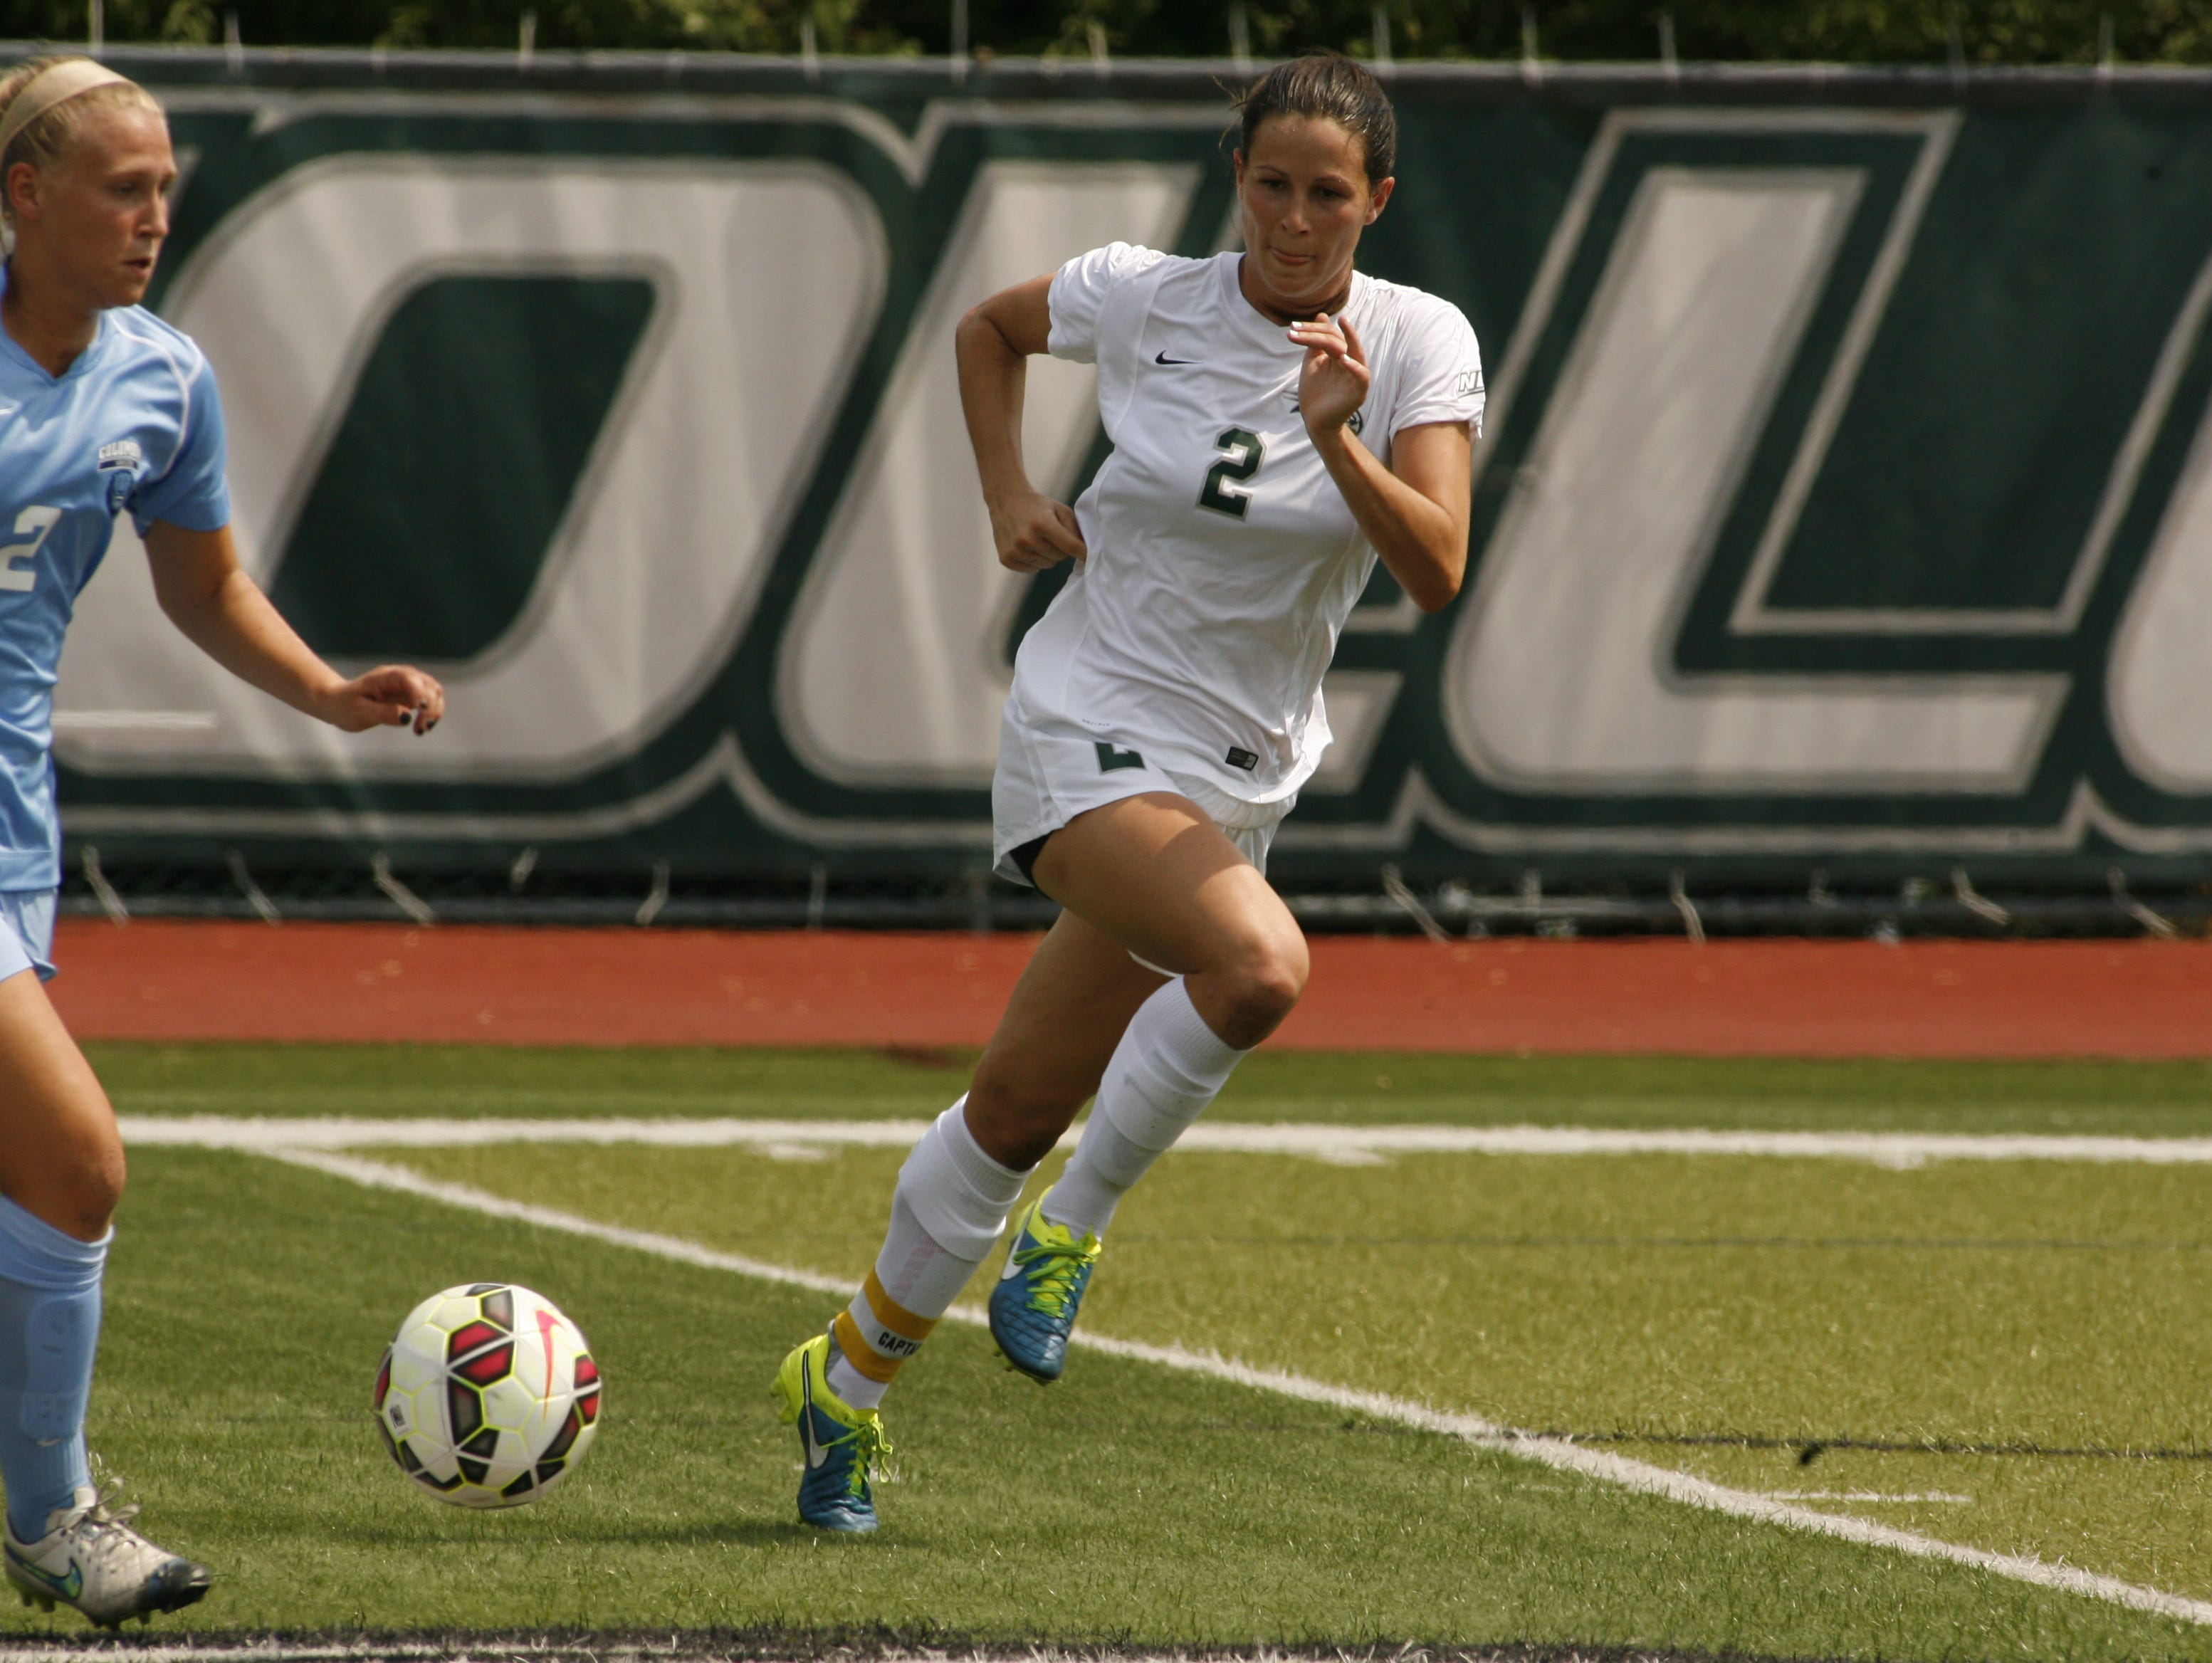 Wagner College junior Megan Fritz, a Mariner alum, was named the Northeast Conference's women's soccer player of the year last month.